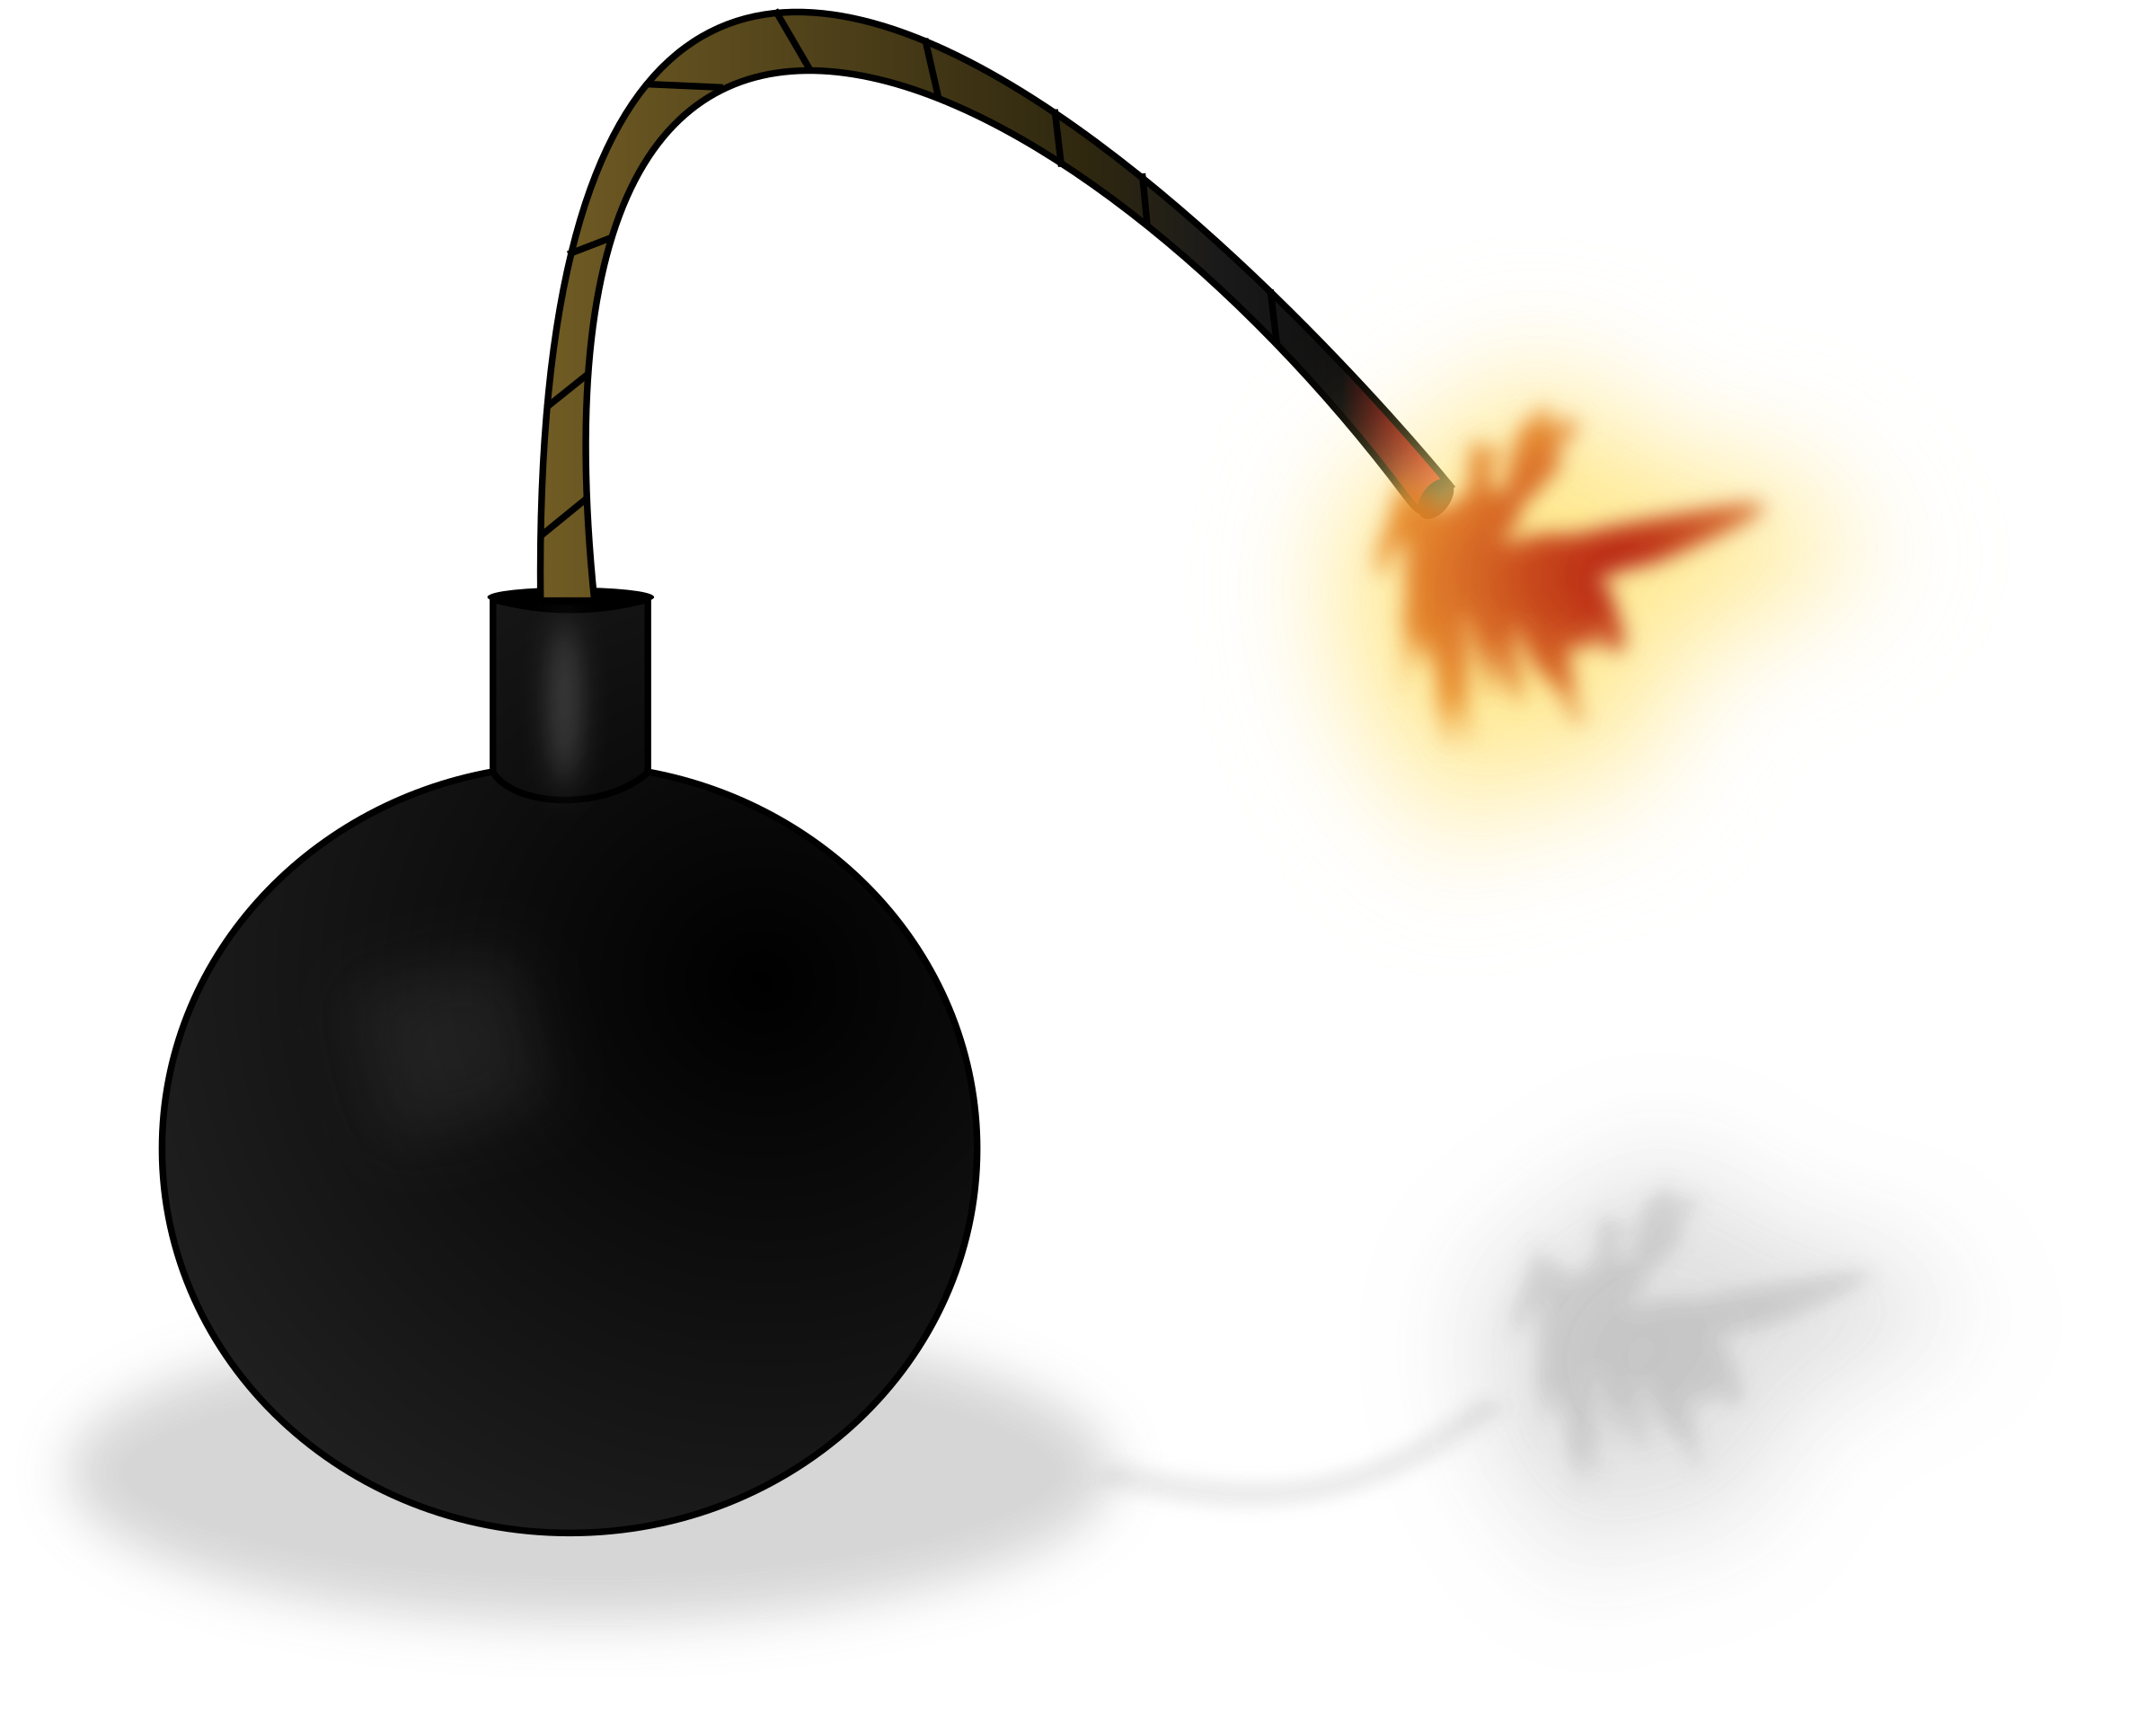 Explosion clipart grenade explosion. Bomb png